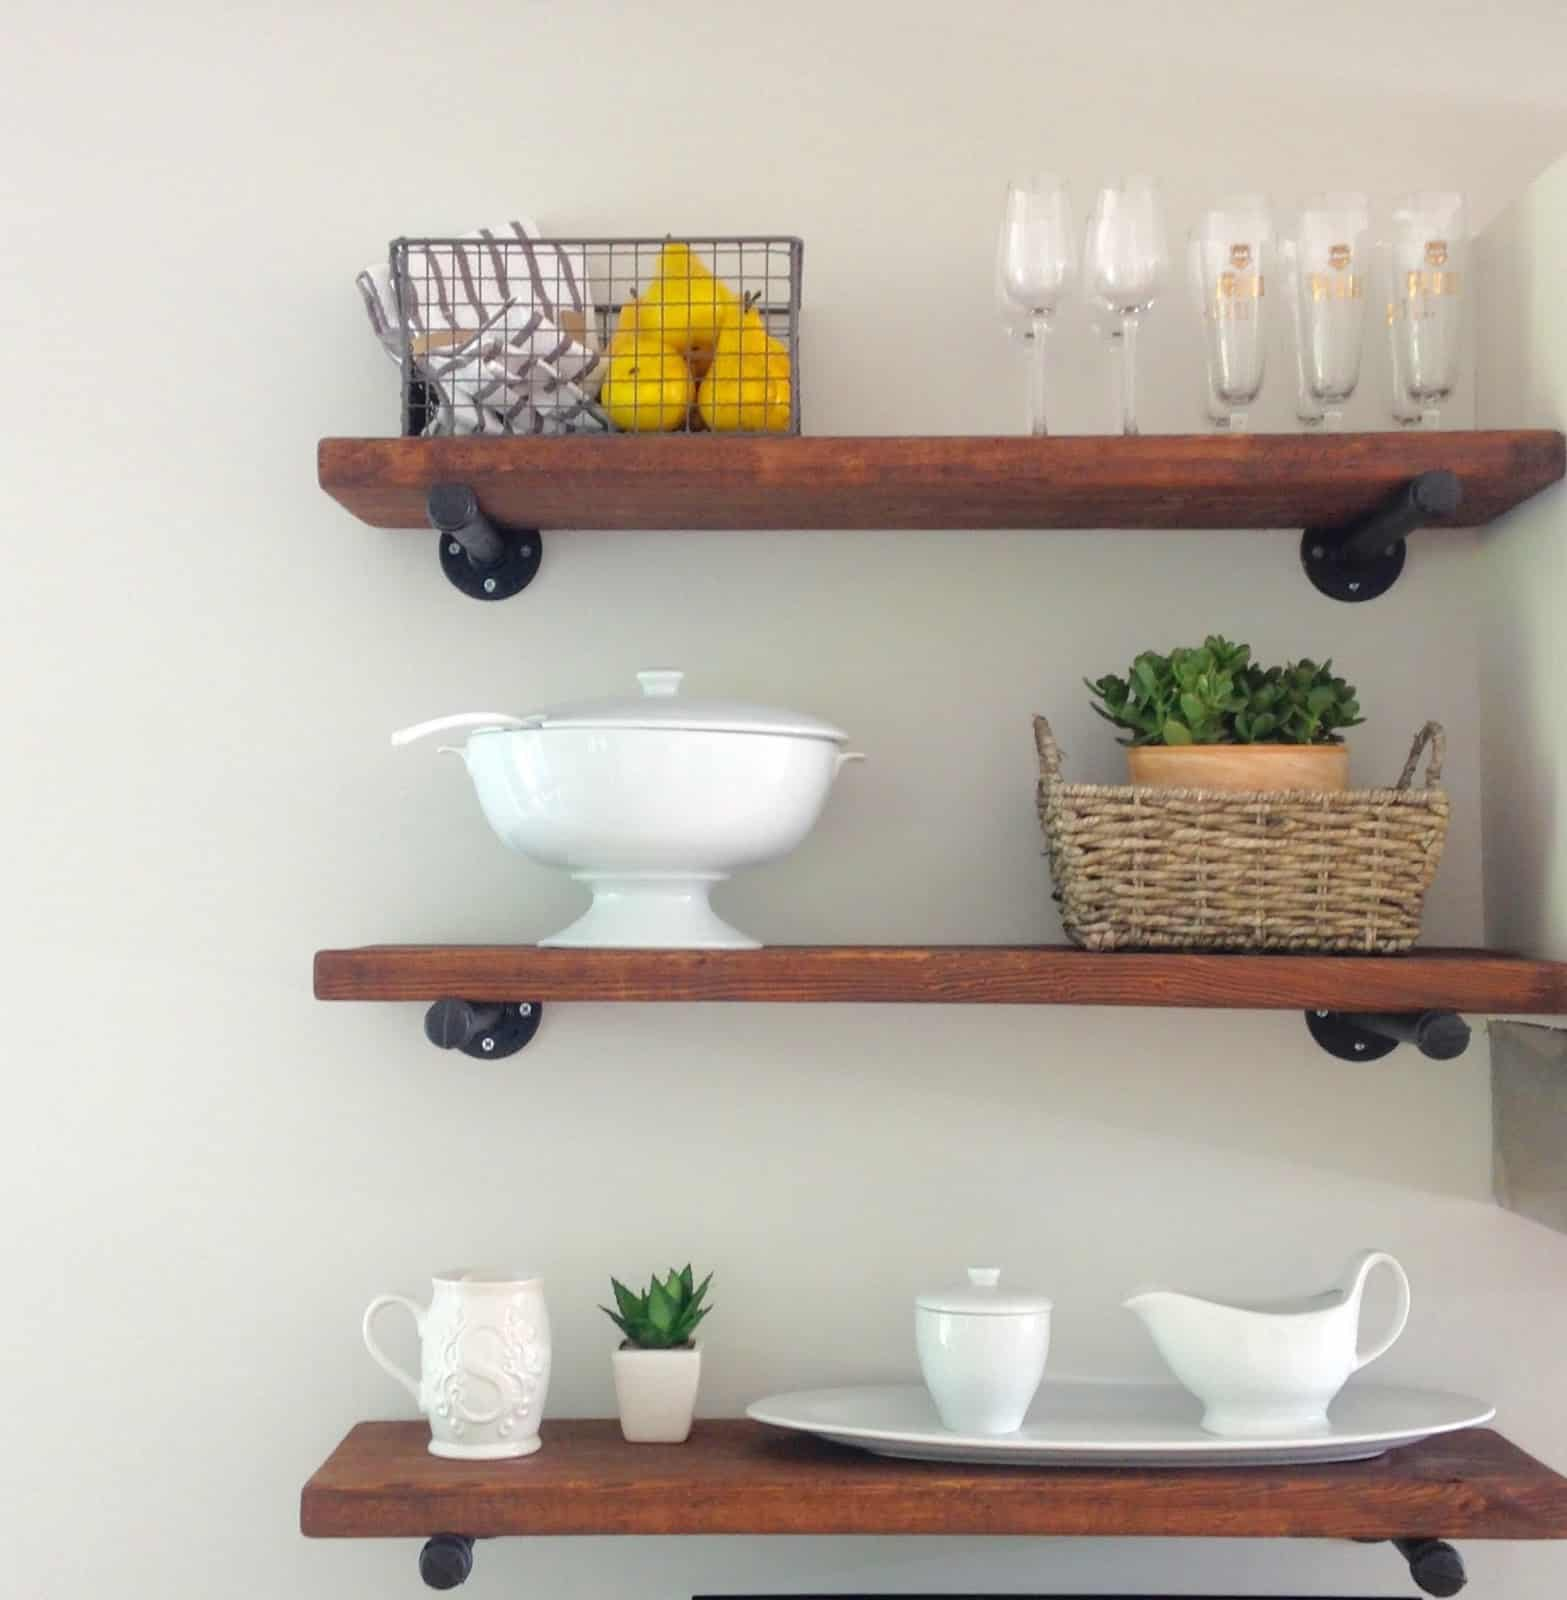 diy rustic kitchen shelves